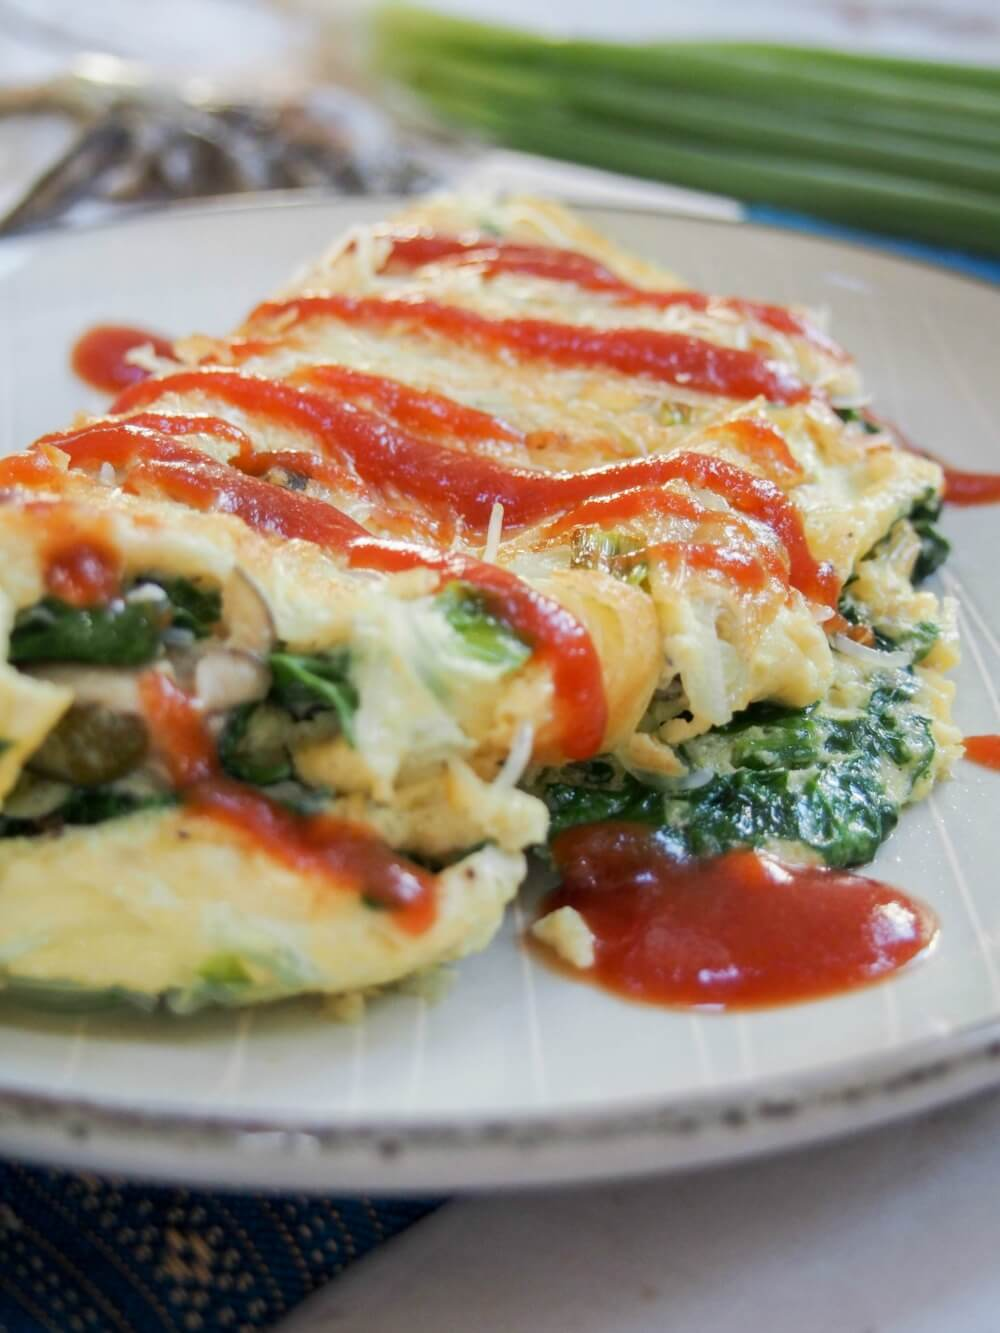 Taiwanese oyster omelette is a classic street food, but it also makes a delicious brunch/lunch - easy to make and with lots of great flavor, with oysters, greens and a flavorful sauce.